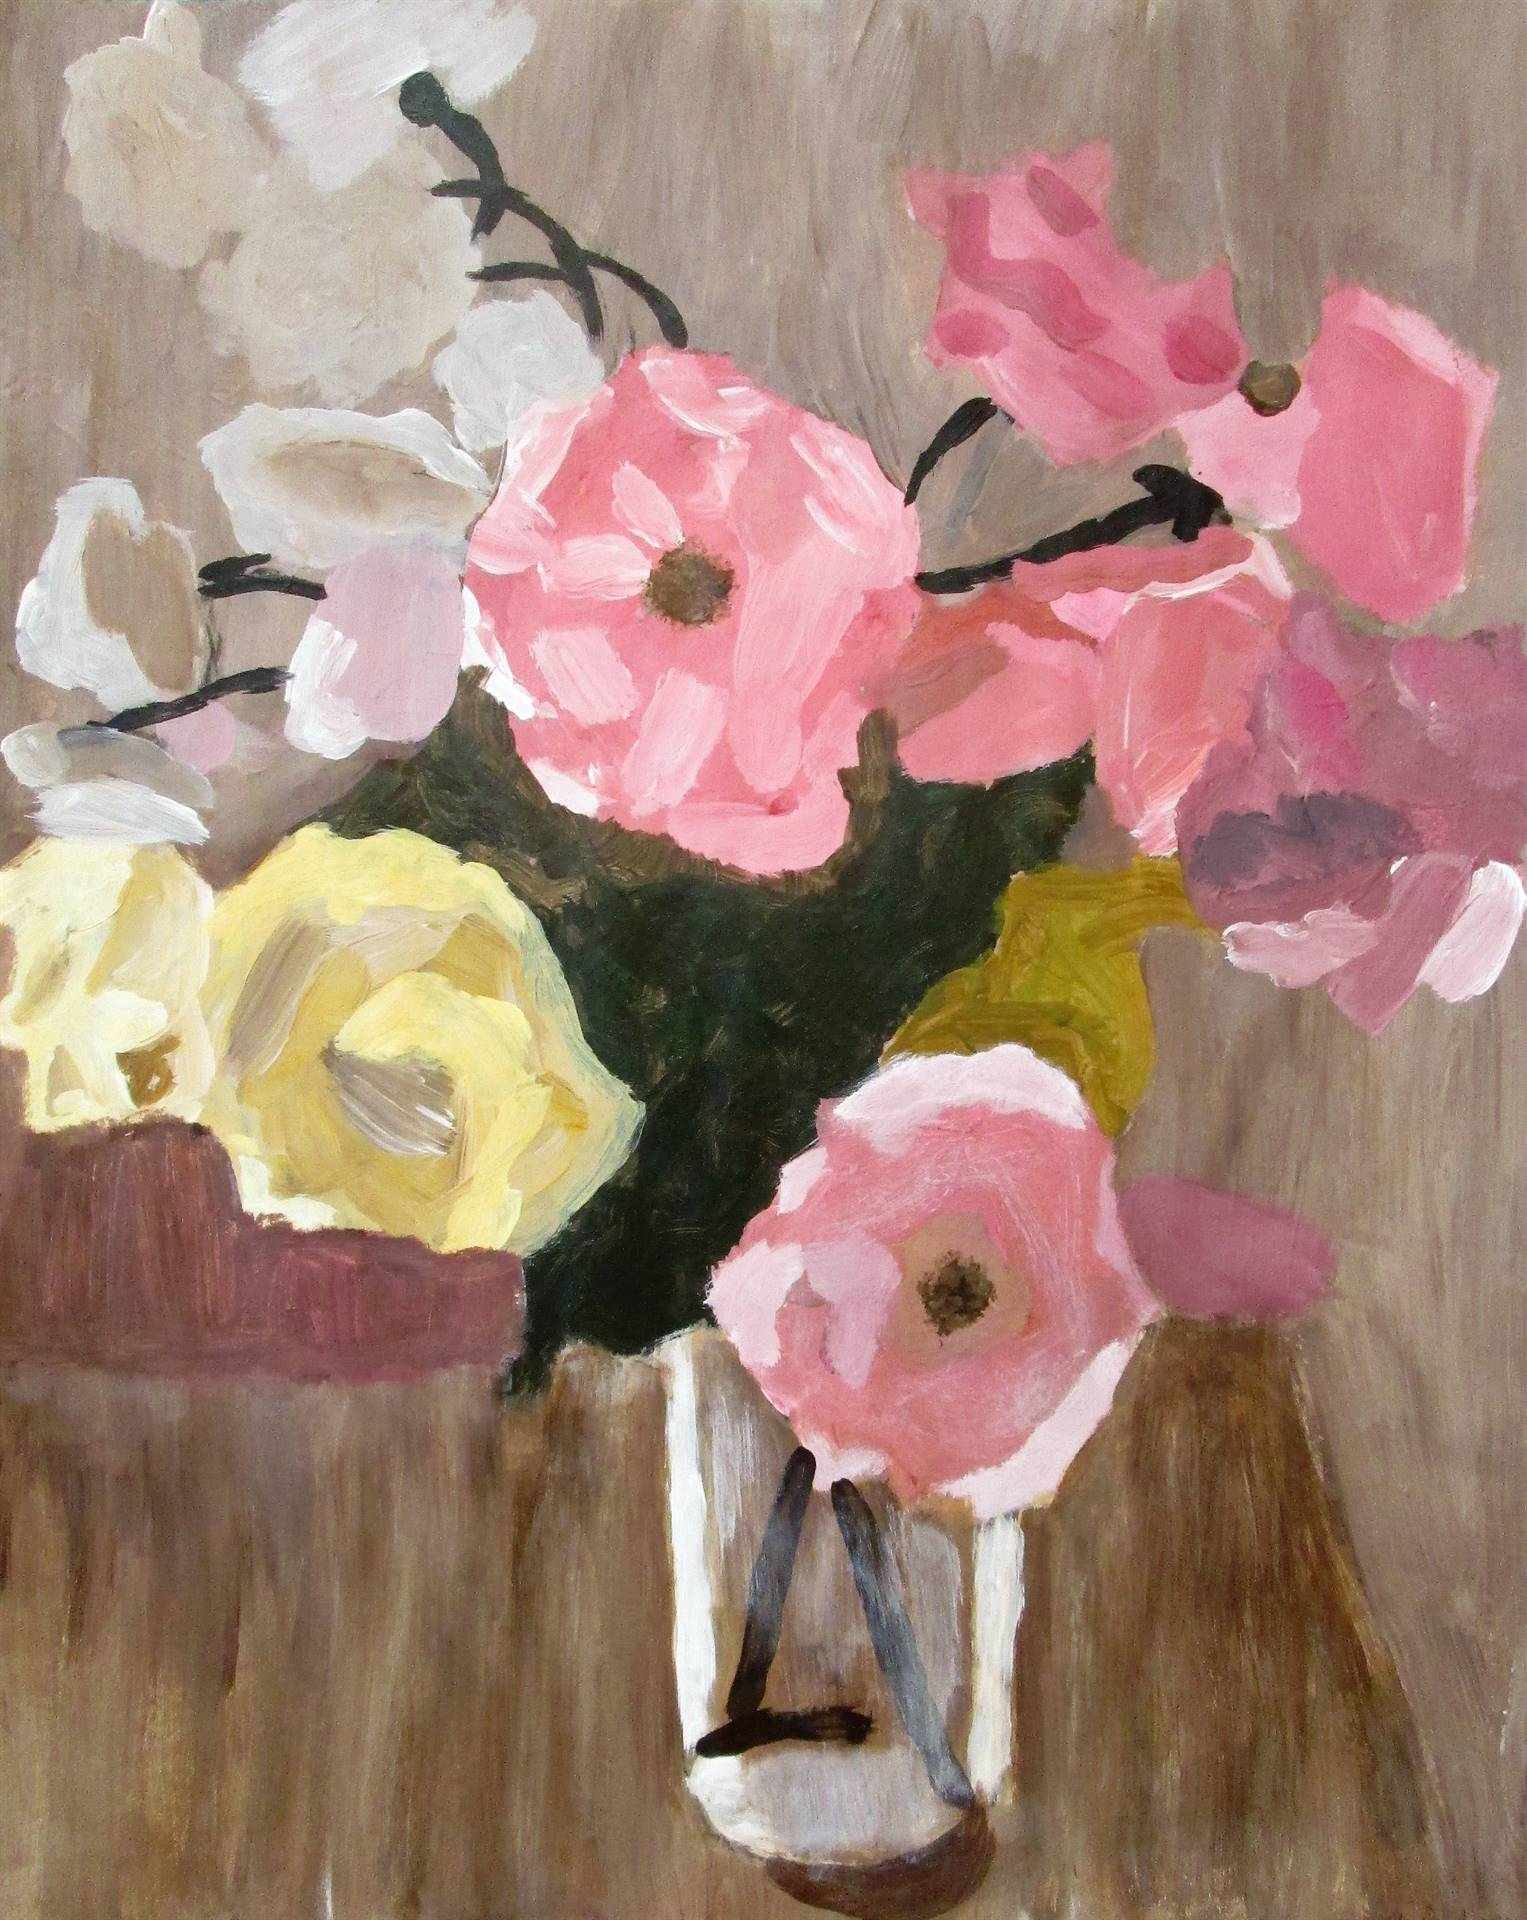 Image of student artwork based on the artist Fairfield Porter.